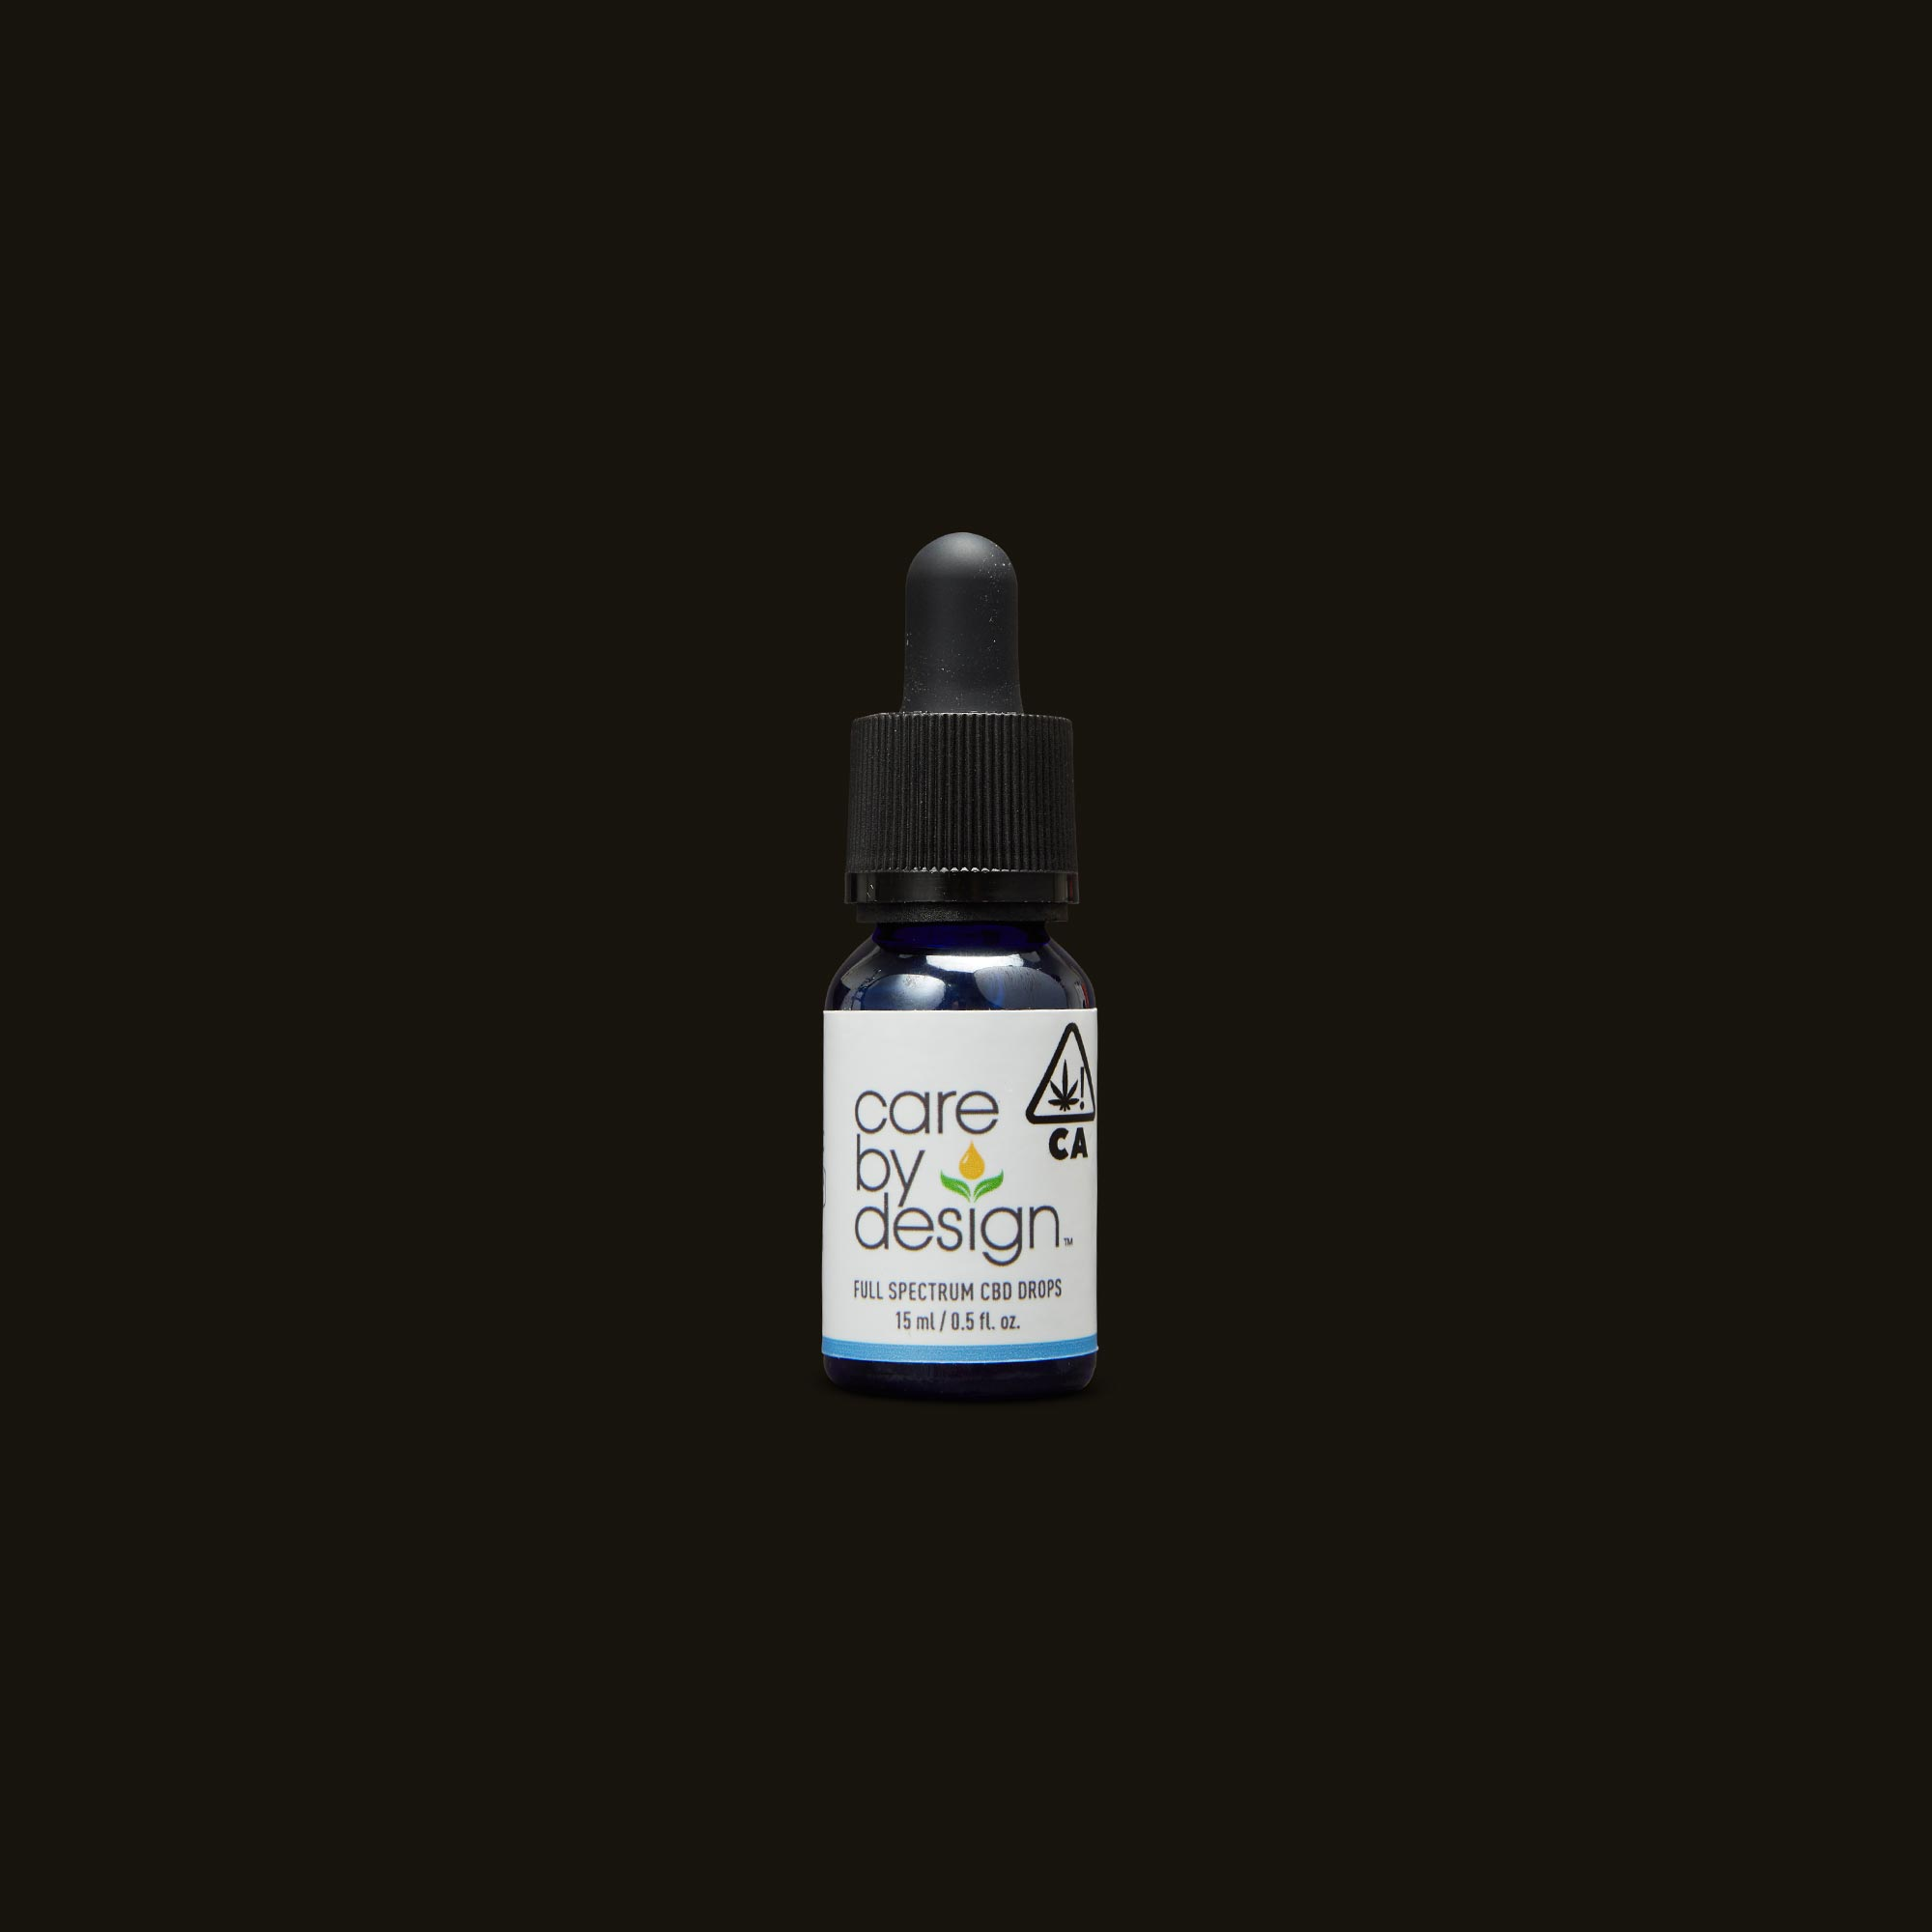 Care By Design 18:1 Full Spectrum CBD Drops - 0.5oz Tincture